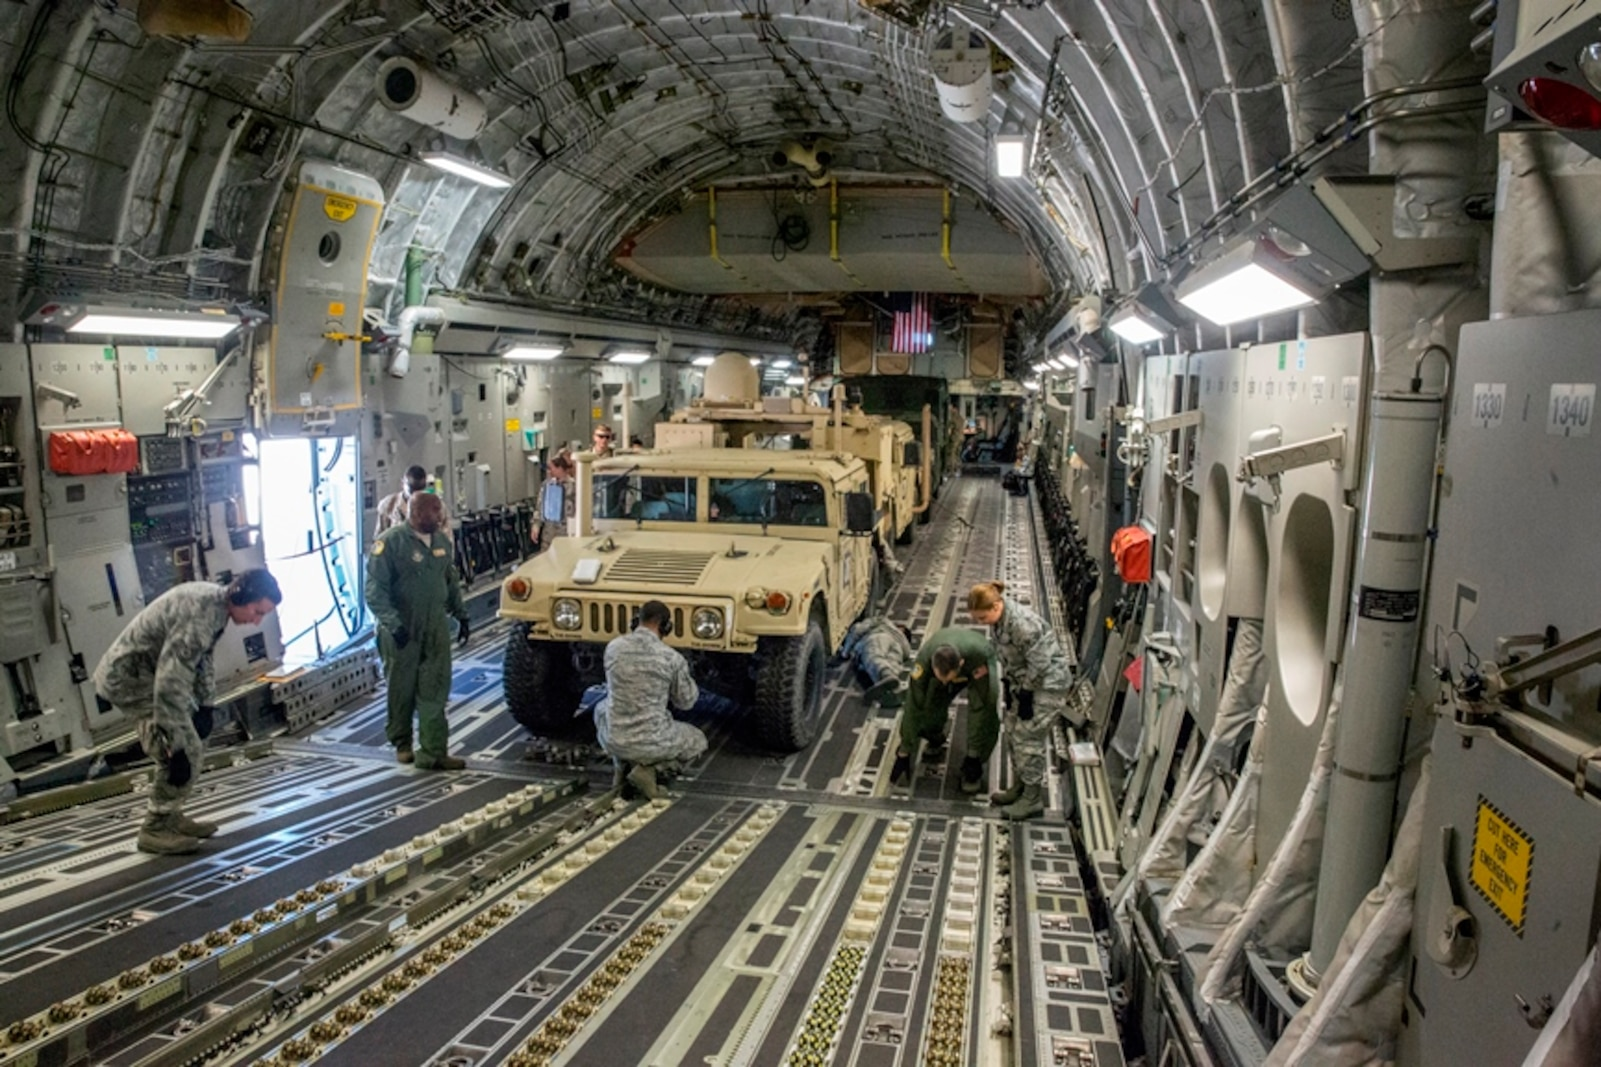 Airmen with 50th Aerial Port Squadron, 452nd Air Mobility Wing, strap down three Marine Corps High Mobility Multipurpose Wheeled Vehicles (HMMWV) that are parked in the loading bay of an Air Force C-17 Globemaster III aircraft during Strategic Mobility Exercise on March Air Force Reserve Base, Calif., March 12, 2017. STRATMOBEX is a training exercise conducted by the 1st Marine Logistics Group in order to maintain readiness and sharpen skills needed to rapidly deploy personnel and equipment on a large scale.